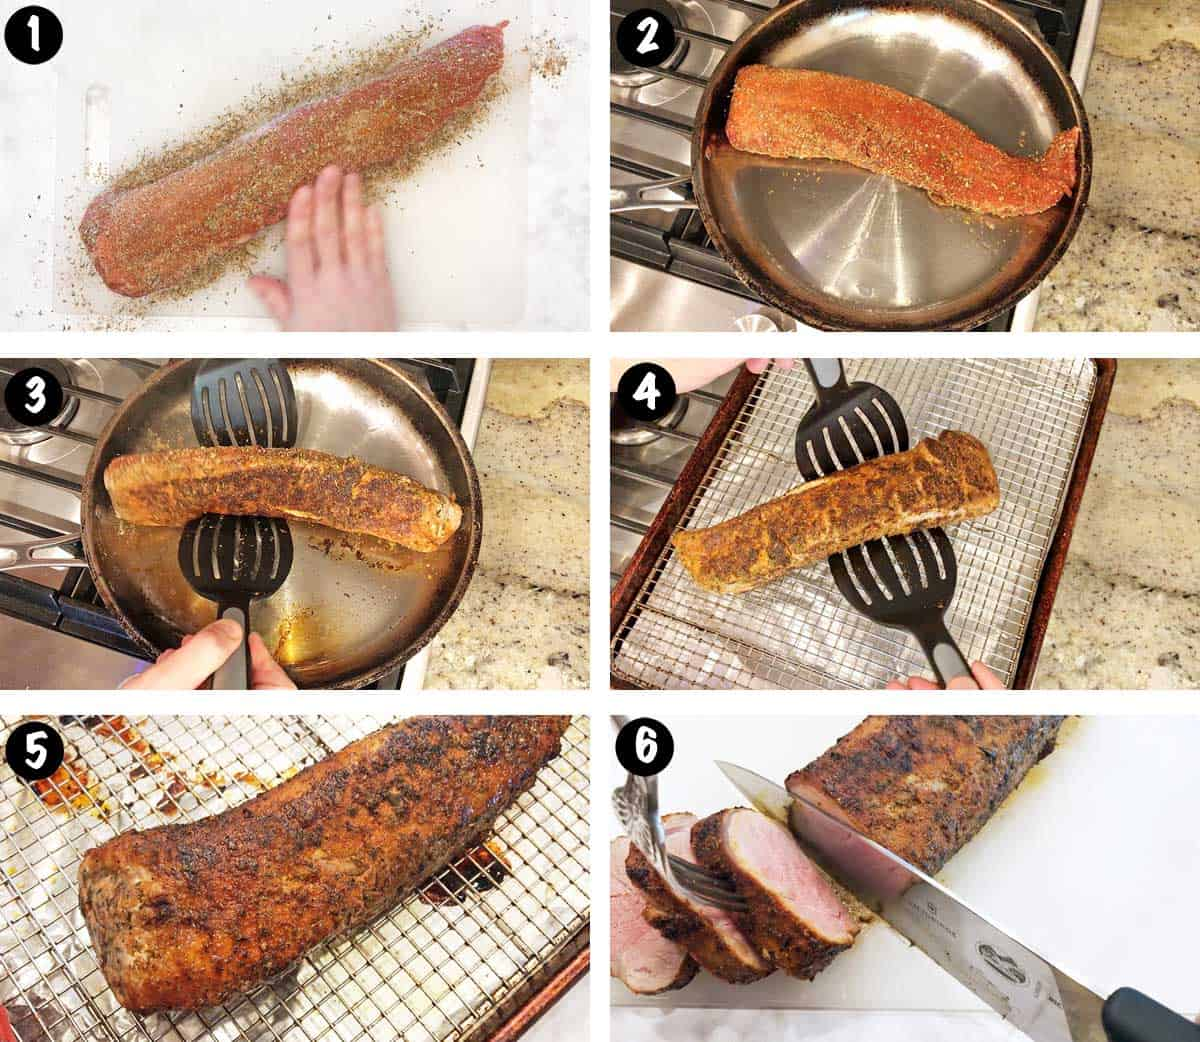 A photo collage showing the steps for making roasted pork tenderloin.